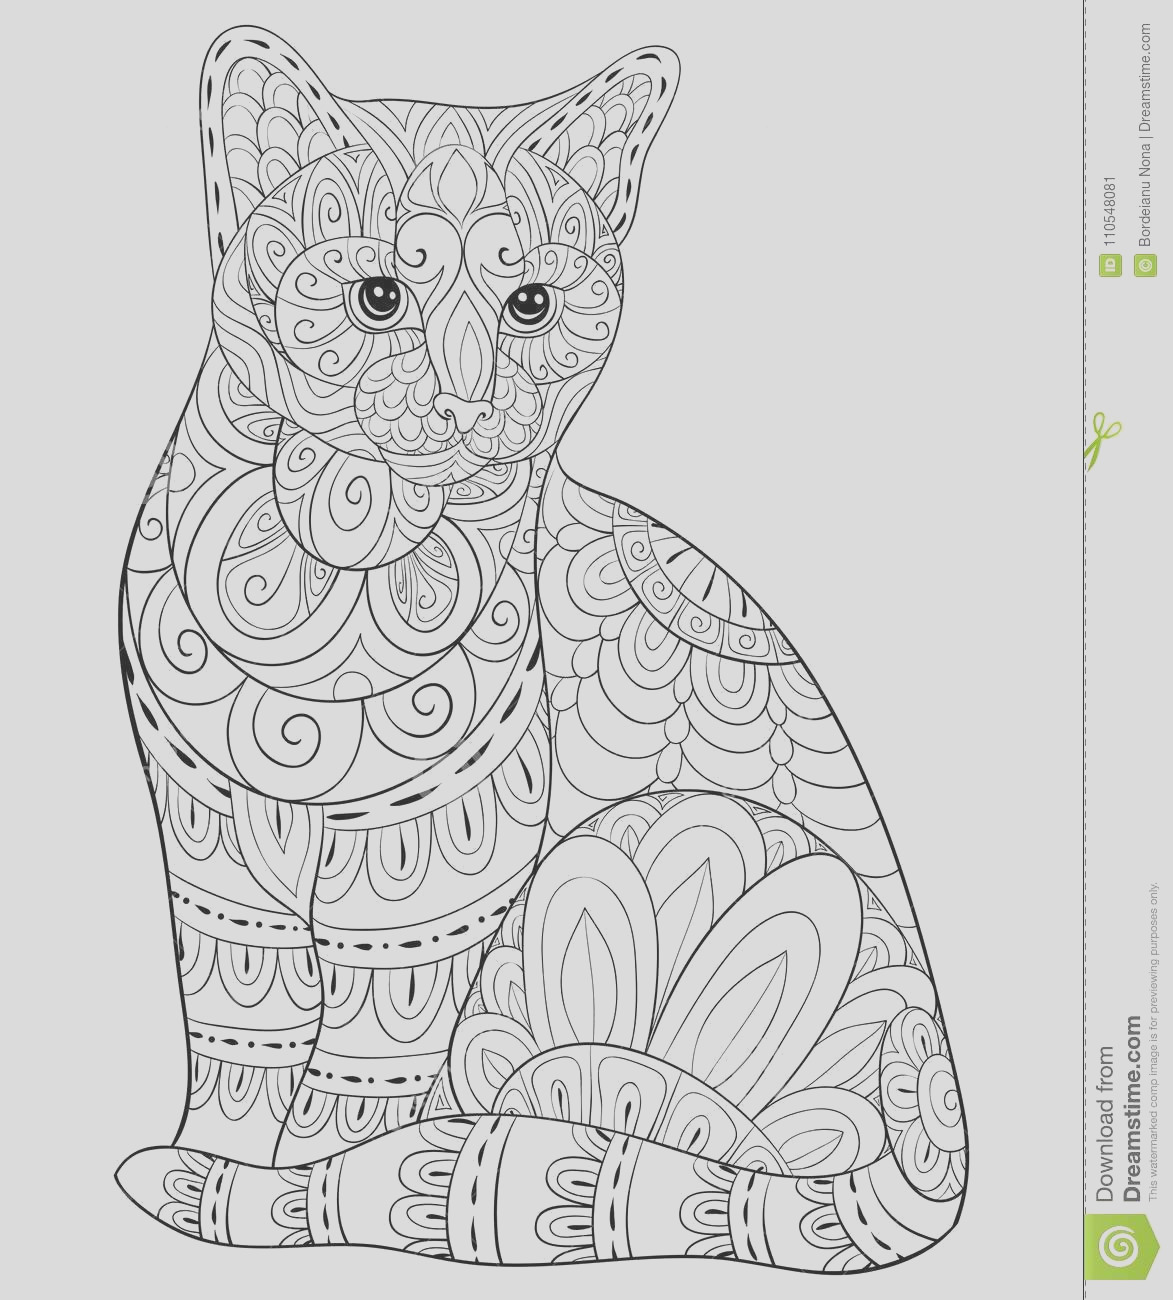 adult coloring book page cute isolated cat relaxing zen art style illustration floral ornamentson background poster image